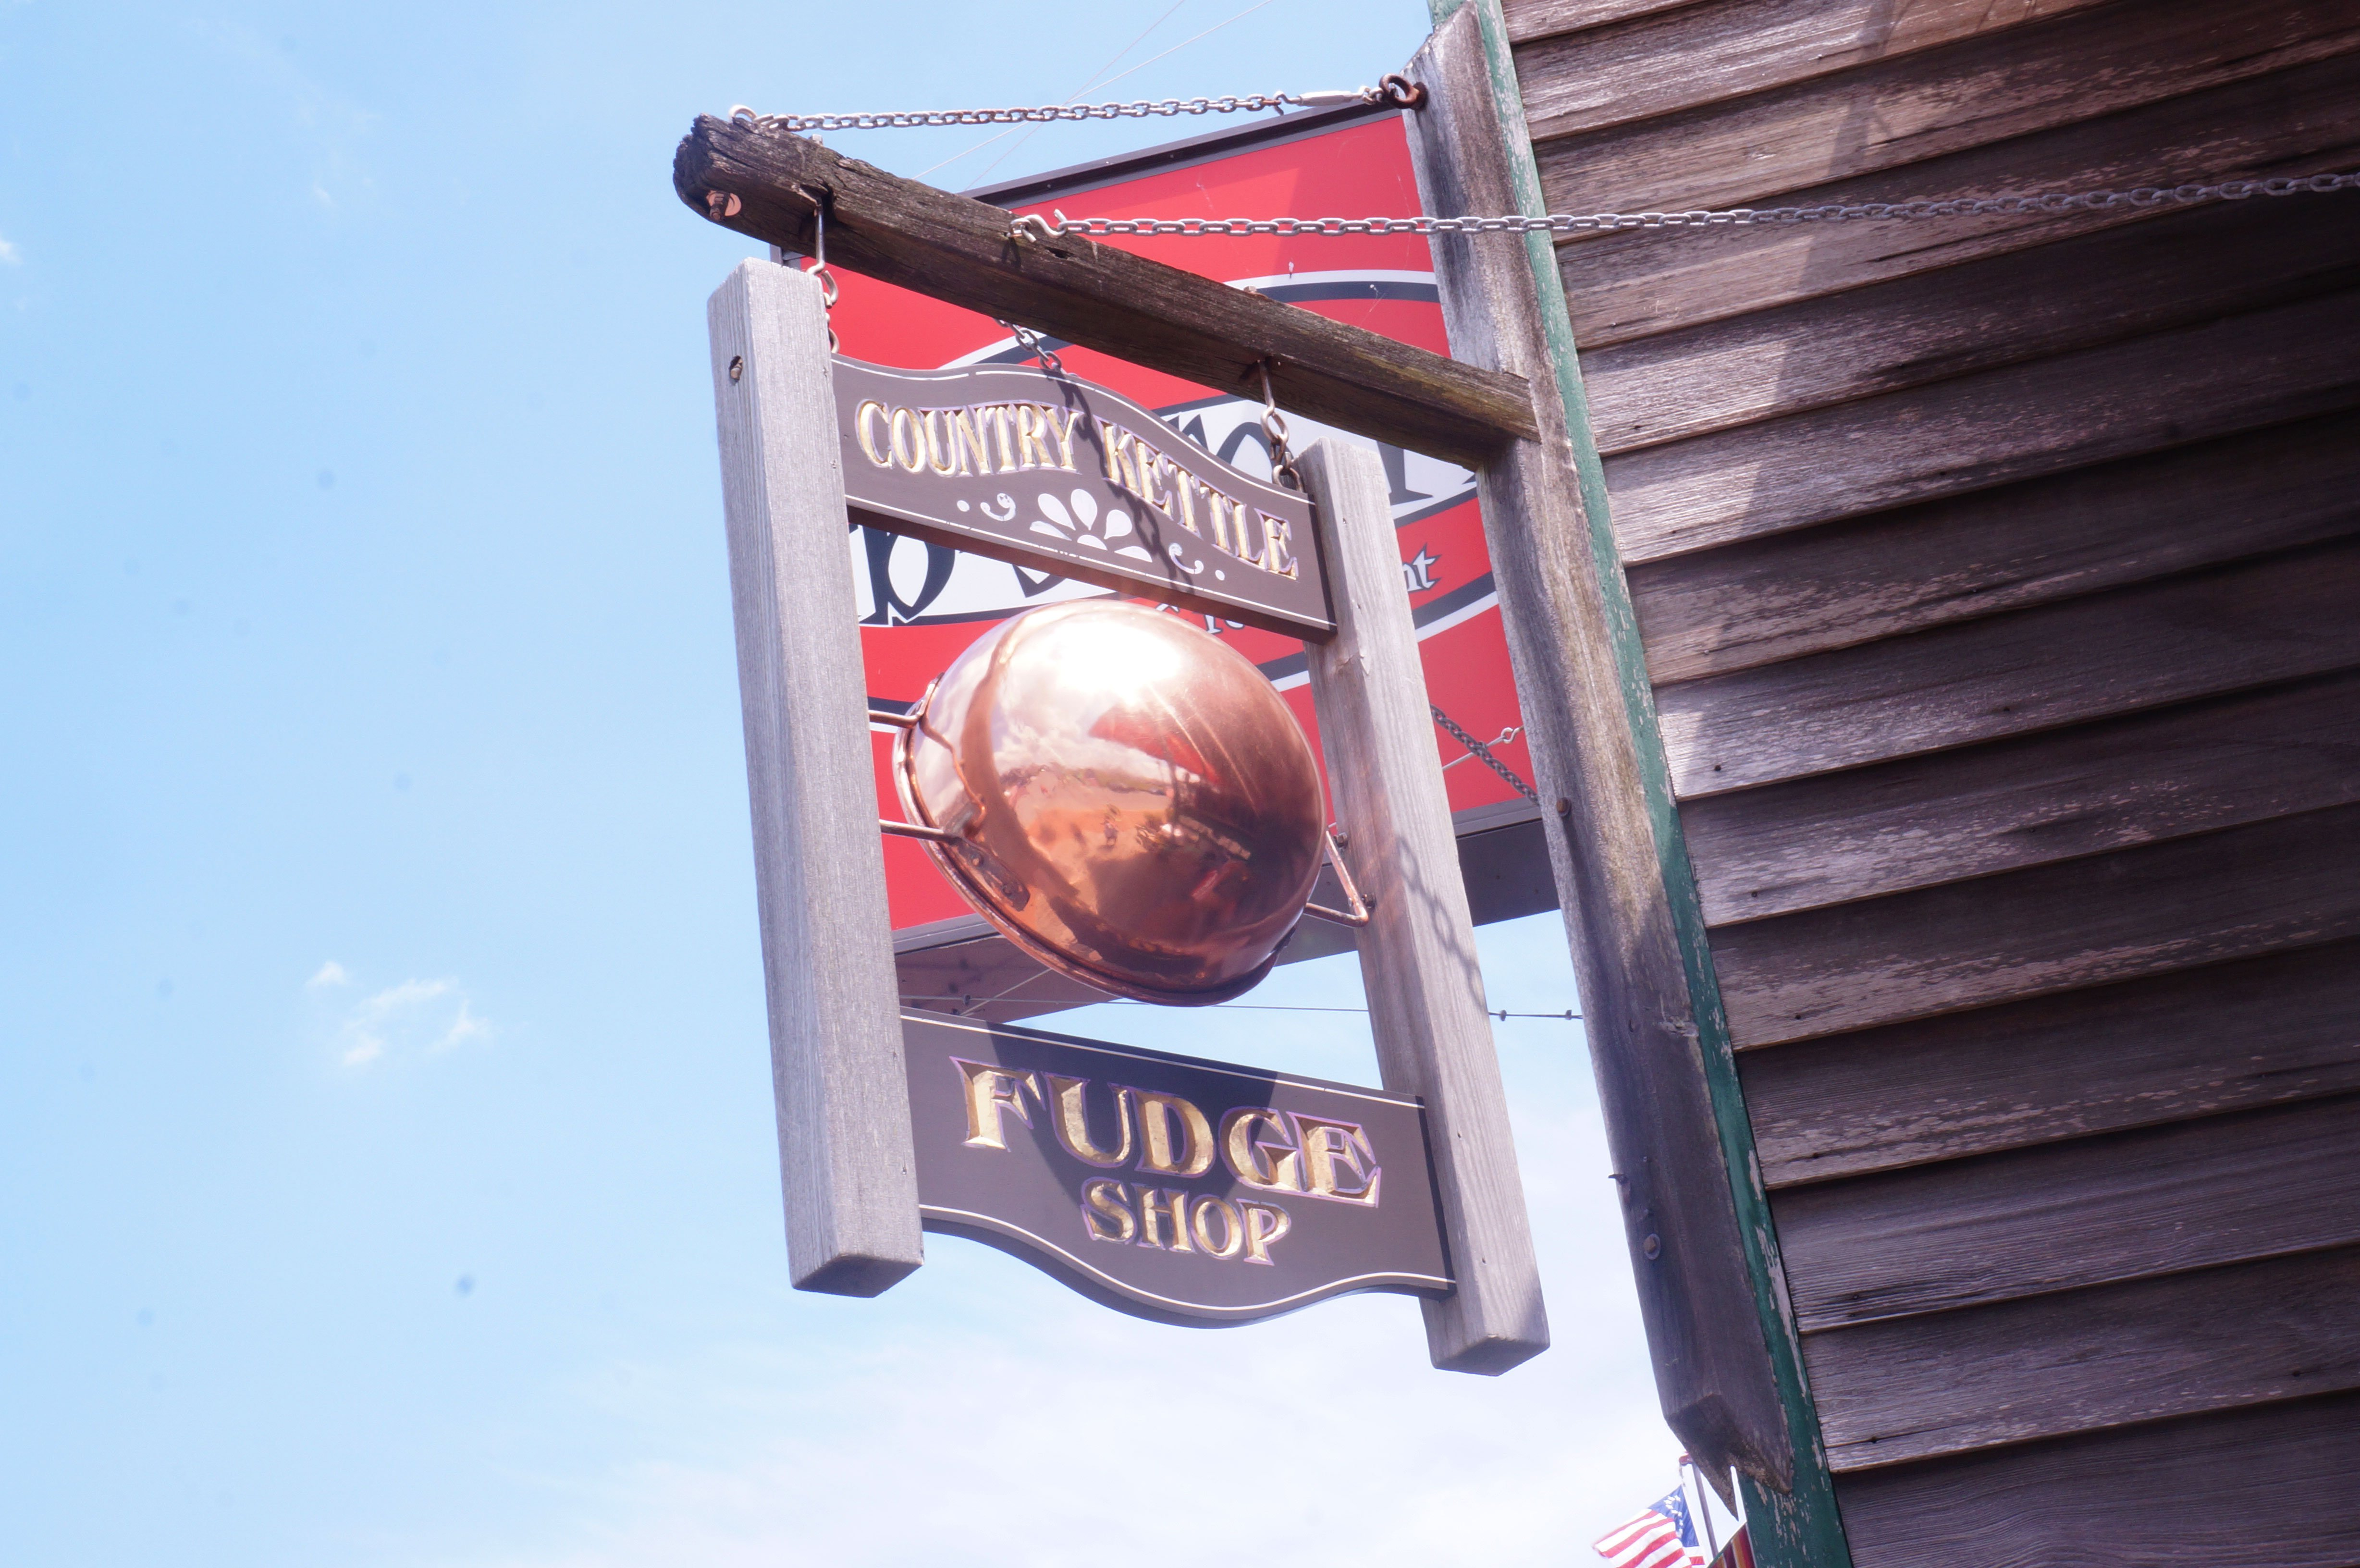 Country-Kettle-Fudge-Shop-Sign